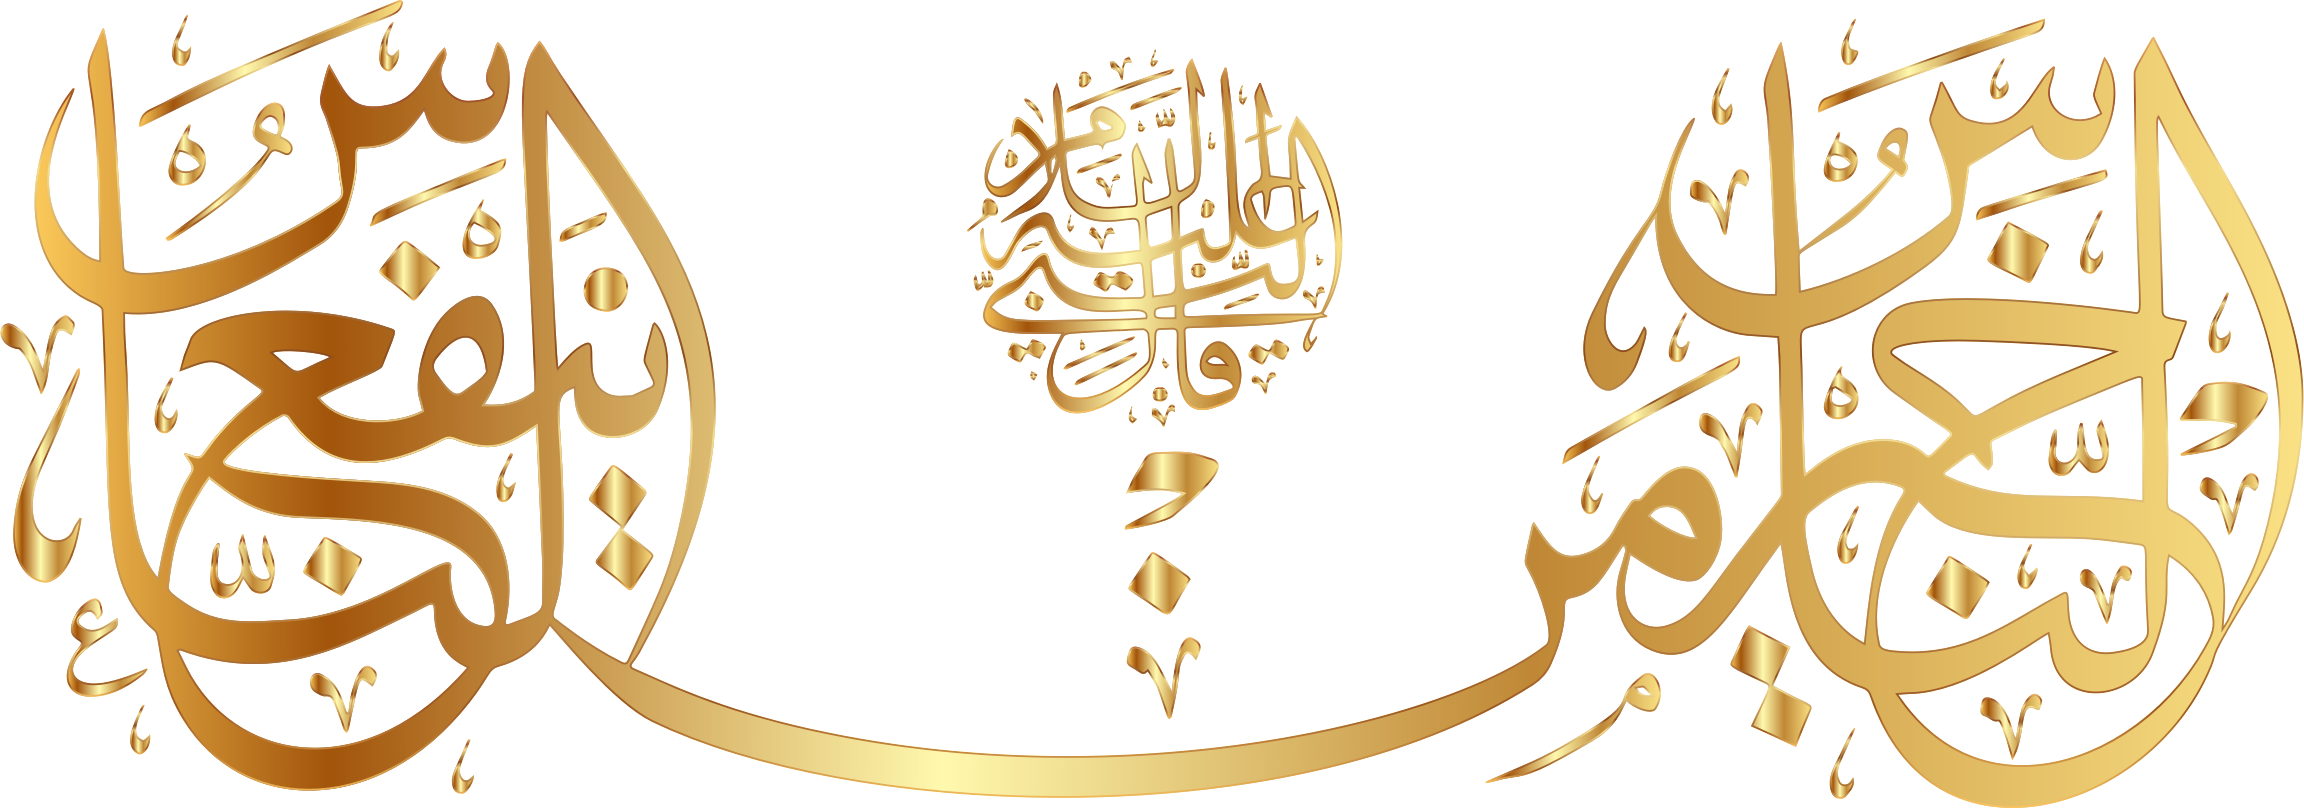 Gold Hadith The Best Of People Is One Who Benefits People Calligraphy No Background by GDJ